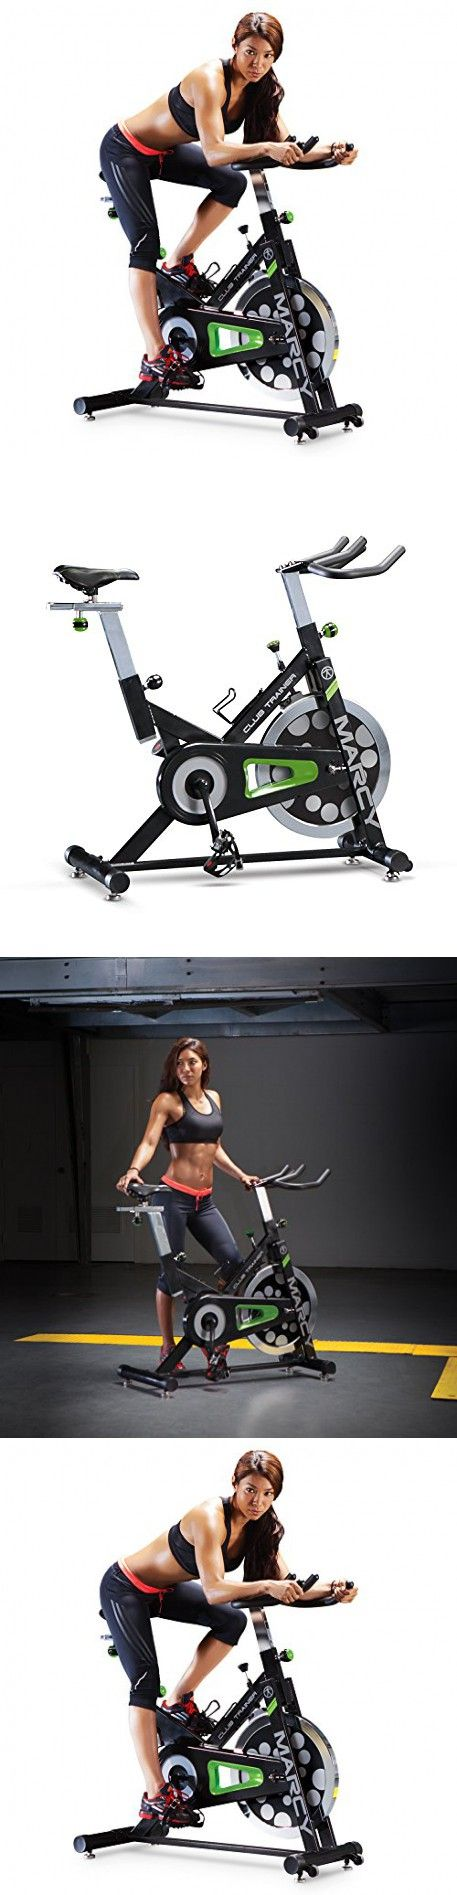 Best 25 Cycle Trainer Ideas On Pinterest Indoor Cycle Trainer